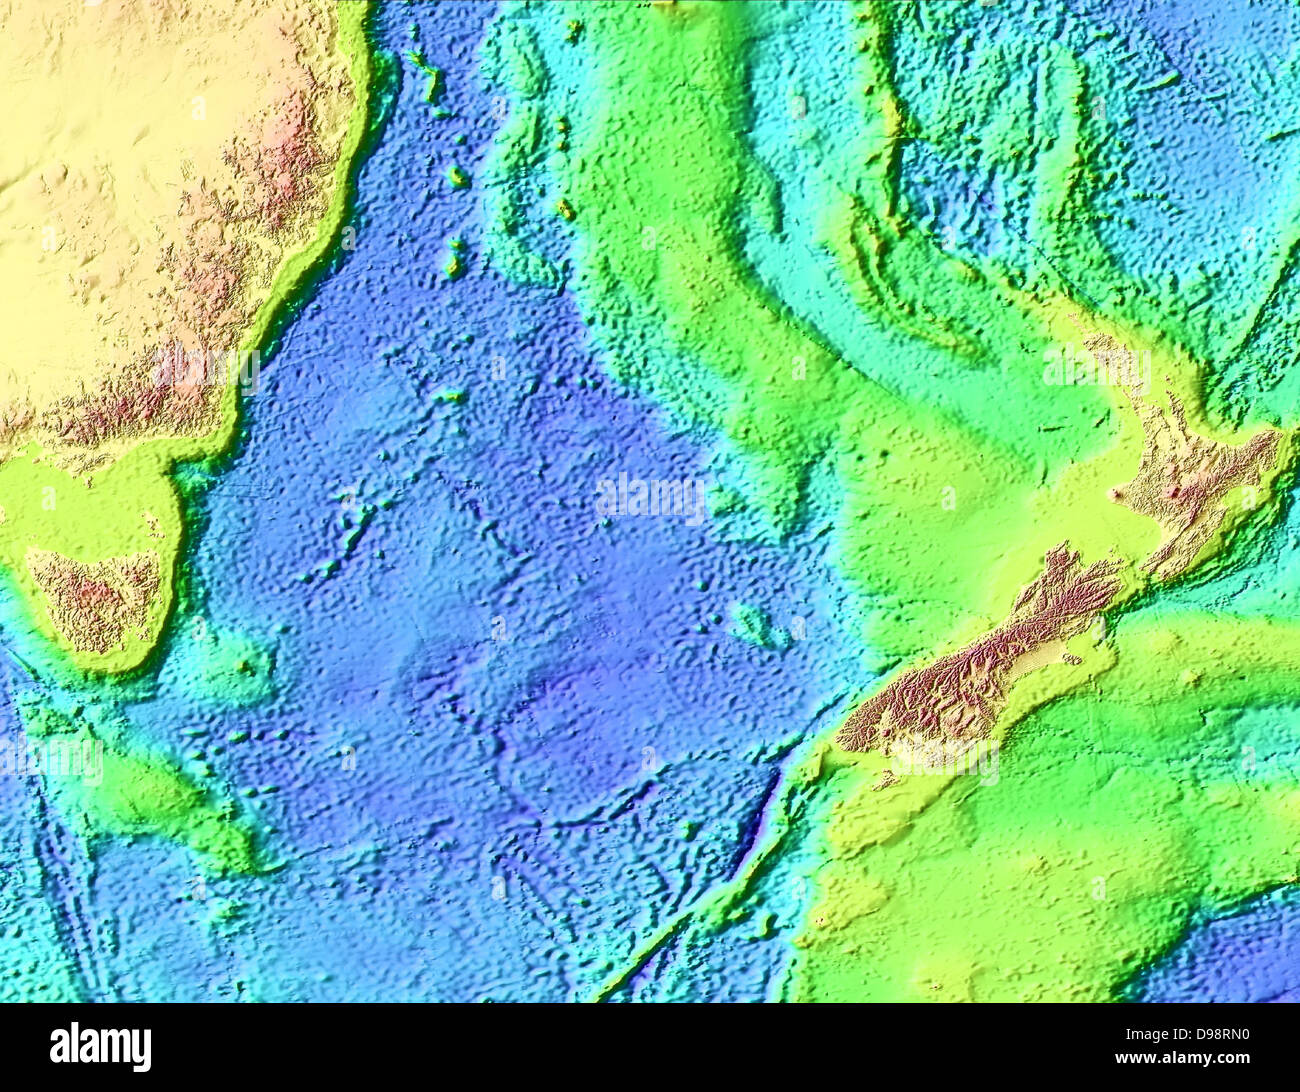 Tasman Sea Map High Resolution Stock Photography And Images Alamy